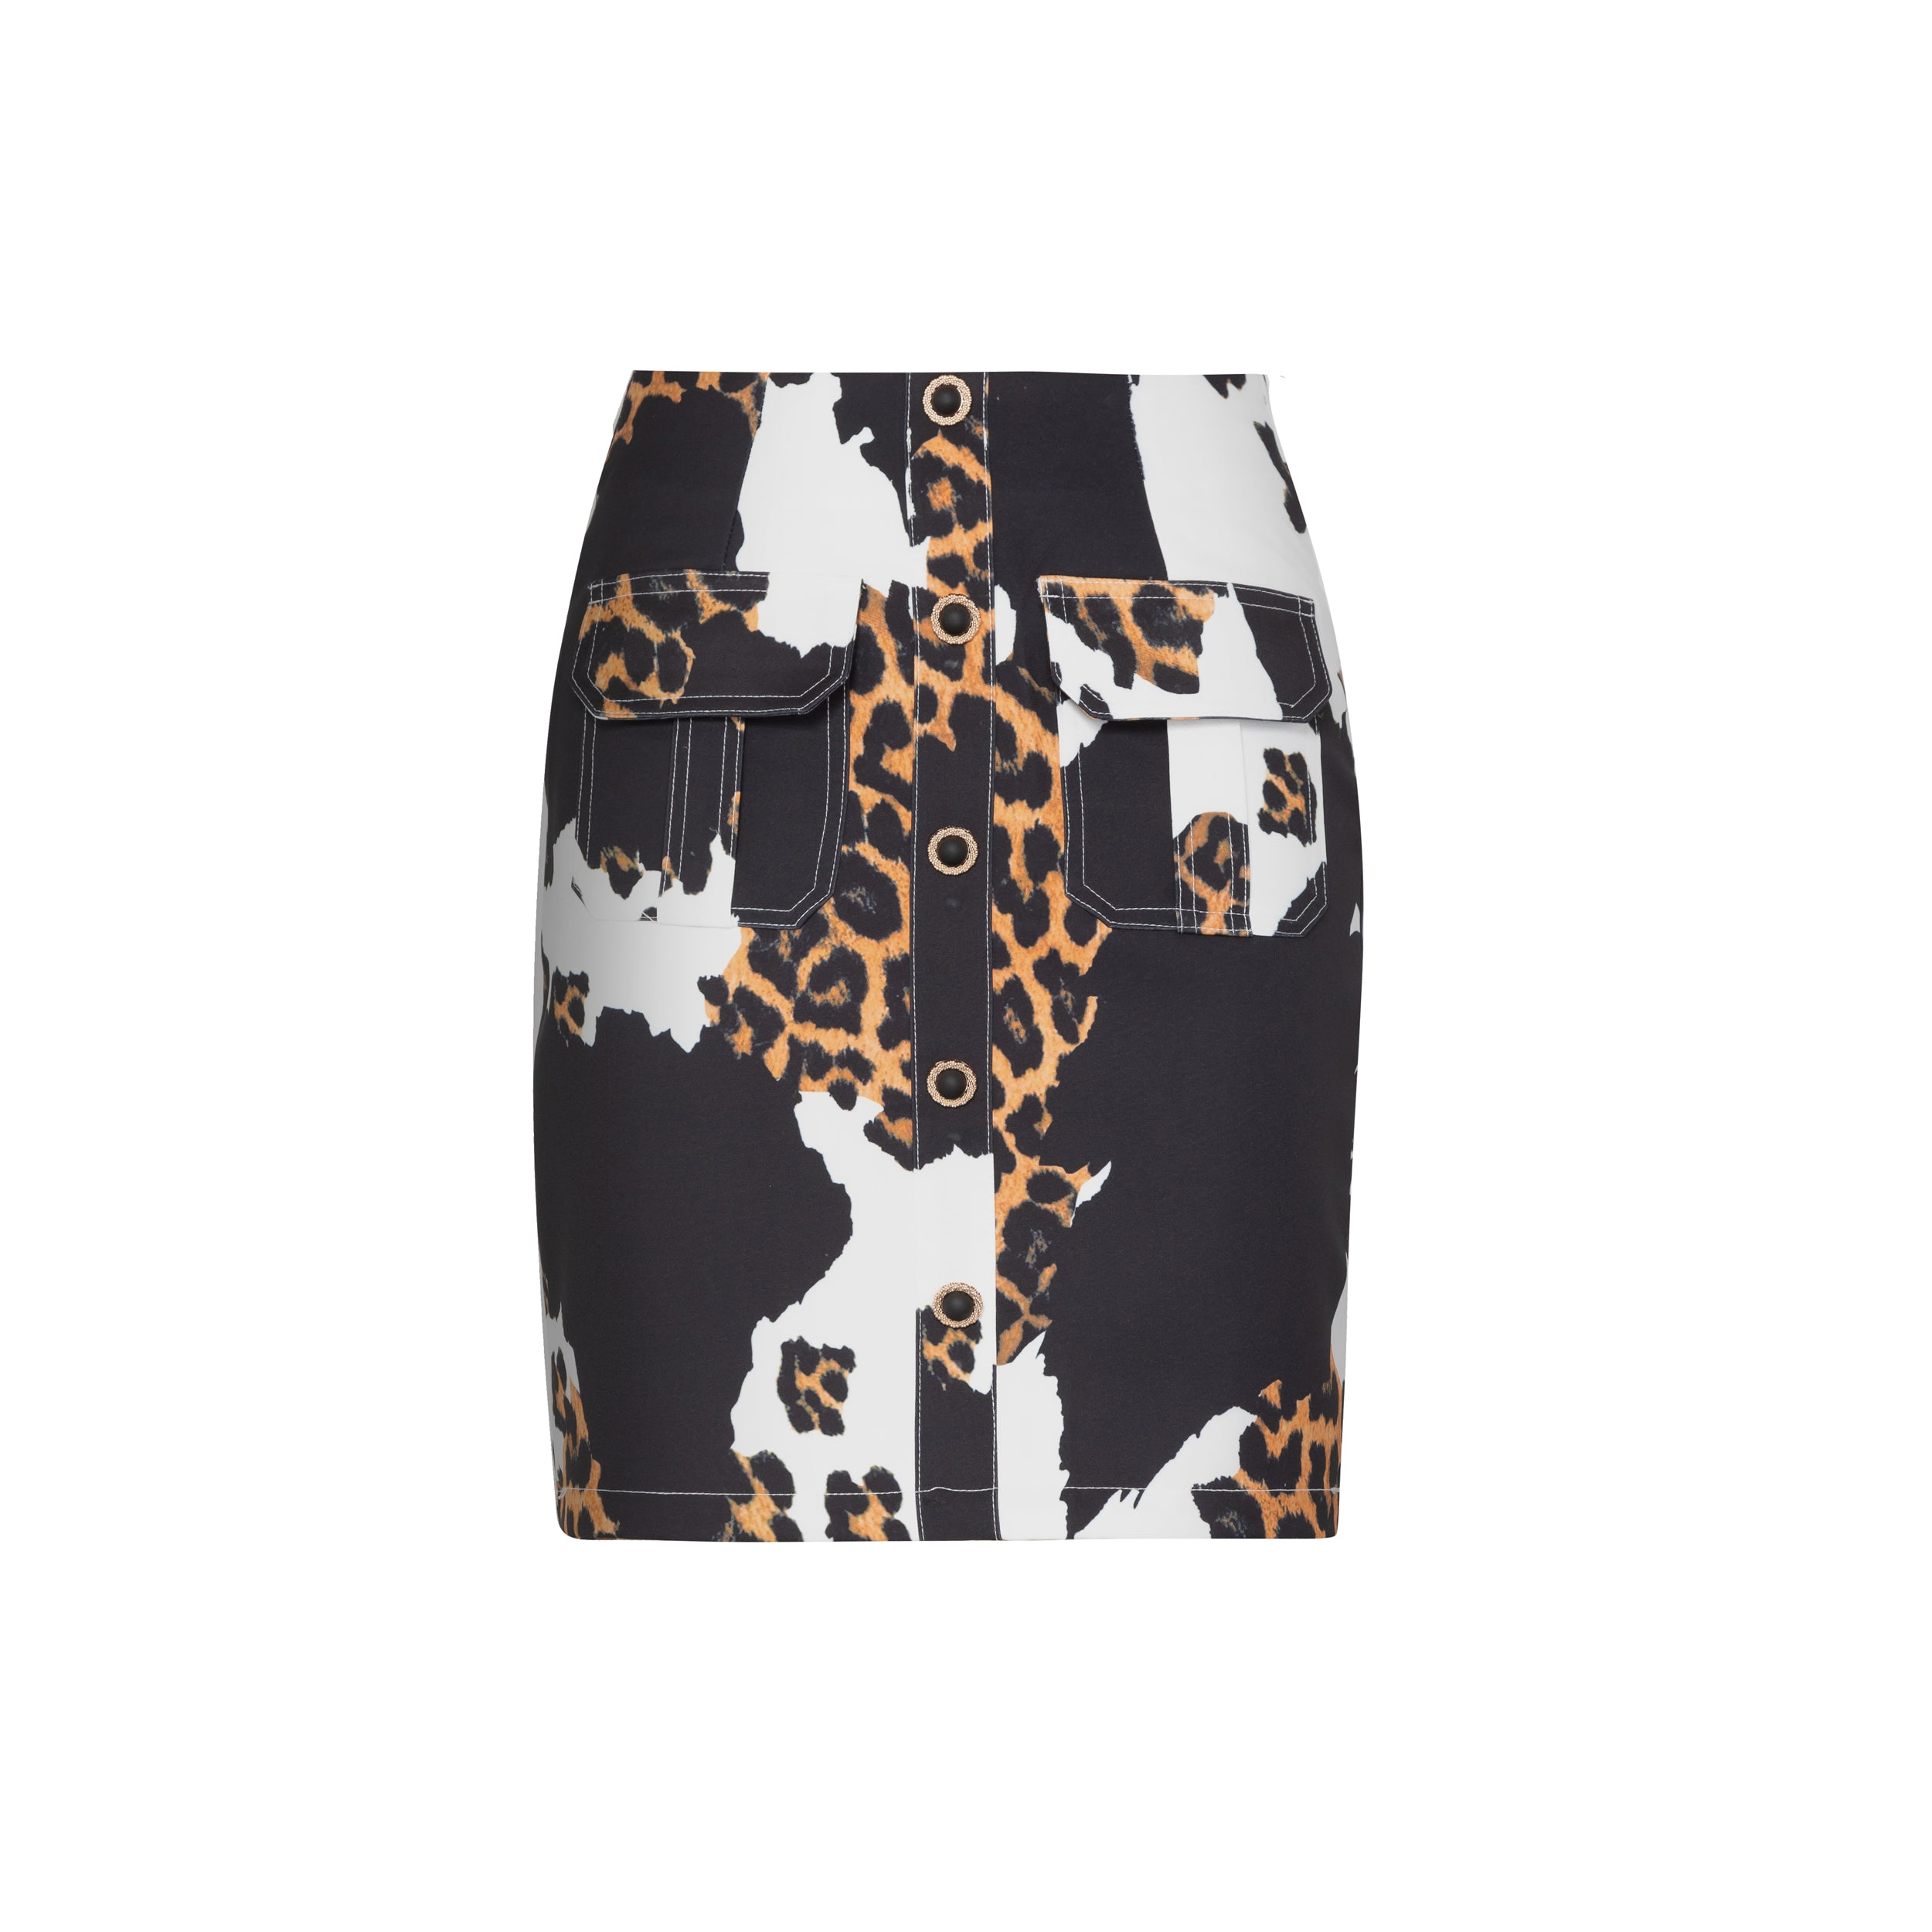 mioh | ROSS - Falda collage animal print y bolsillos